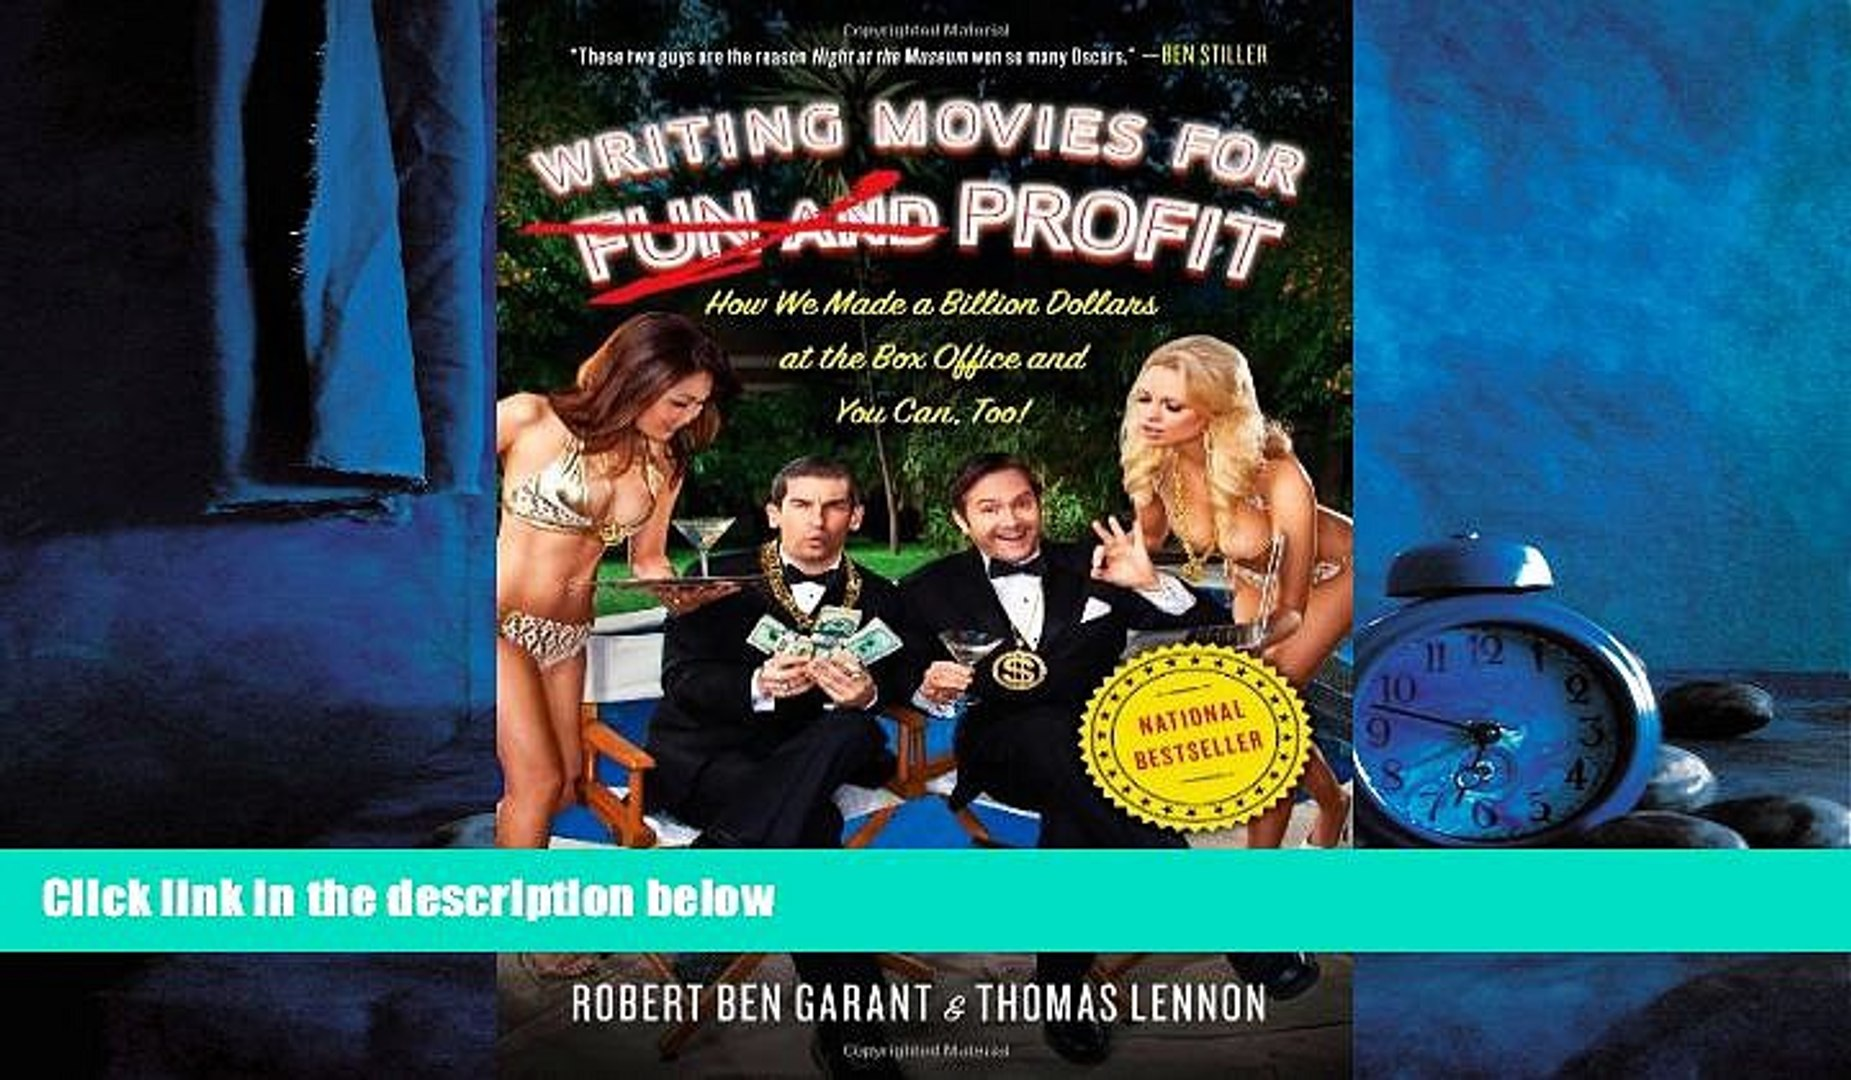 Choose Book Writing Movies for Fun and Profit: How We Made a Billion Dollars at the Box Office and